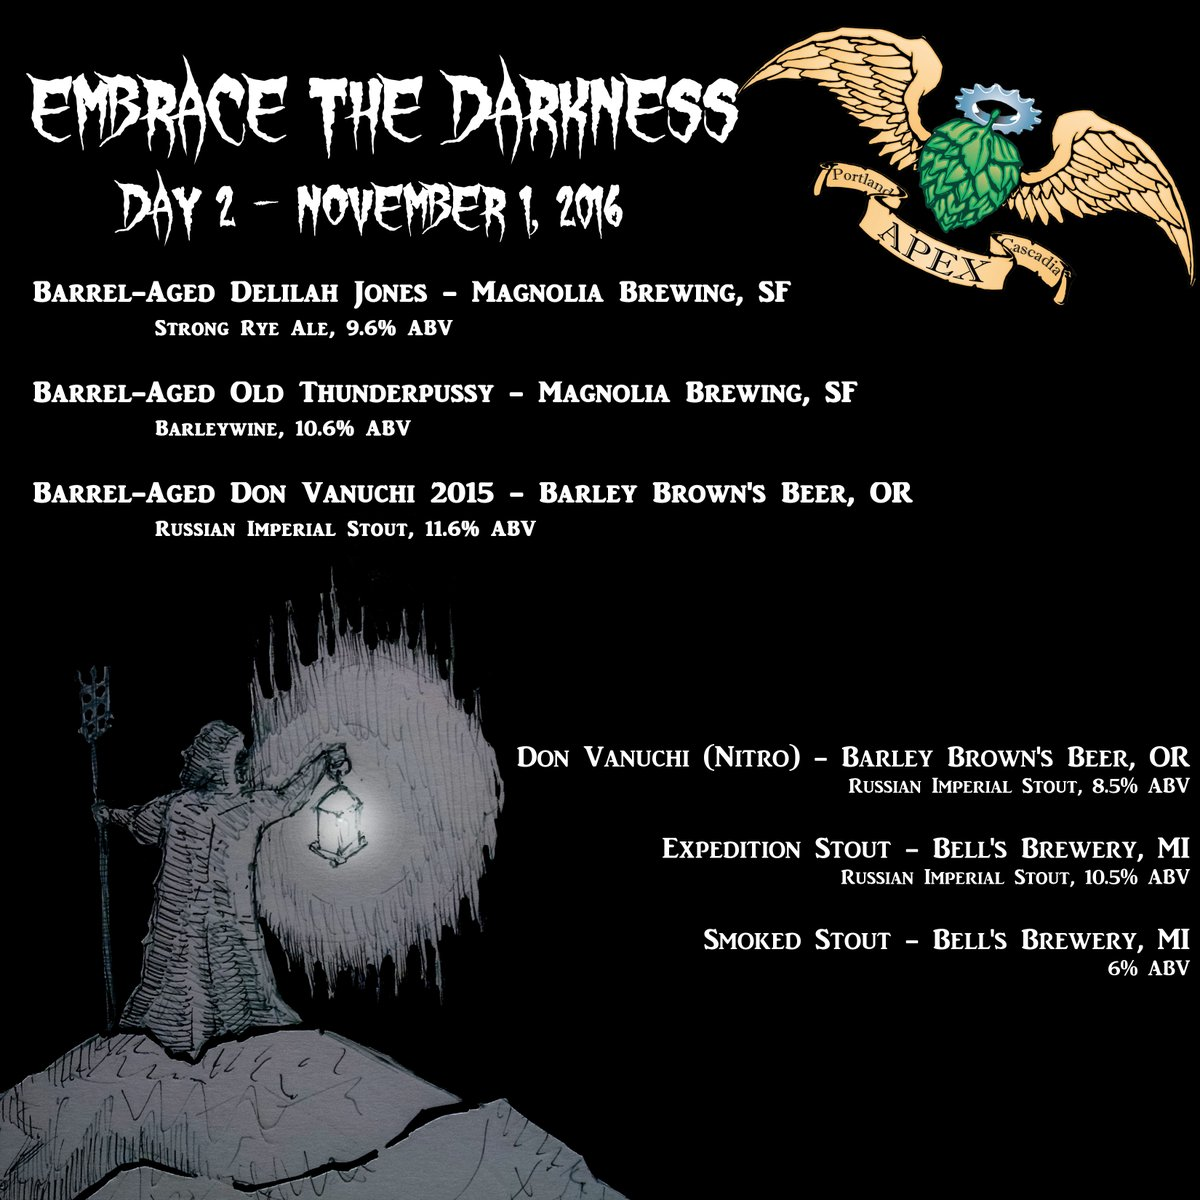 APEX Embrace the Darkness 2016 - Day 2